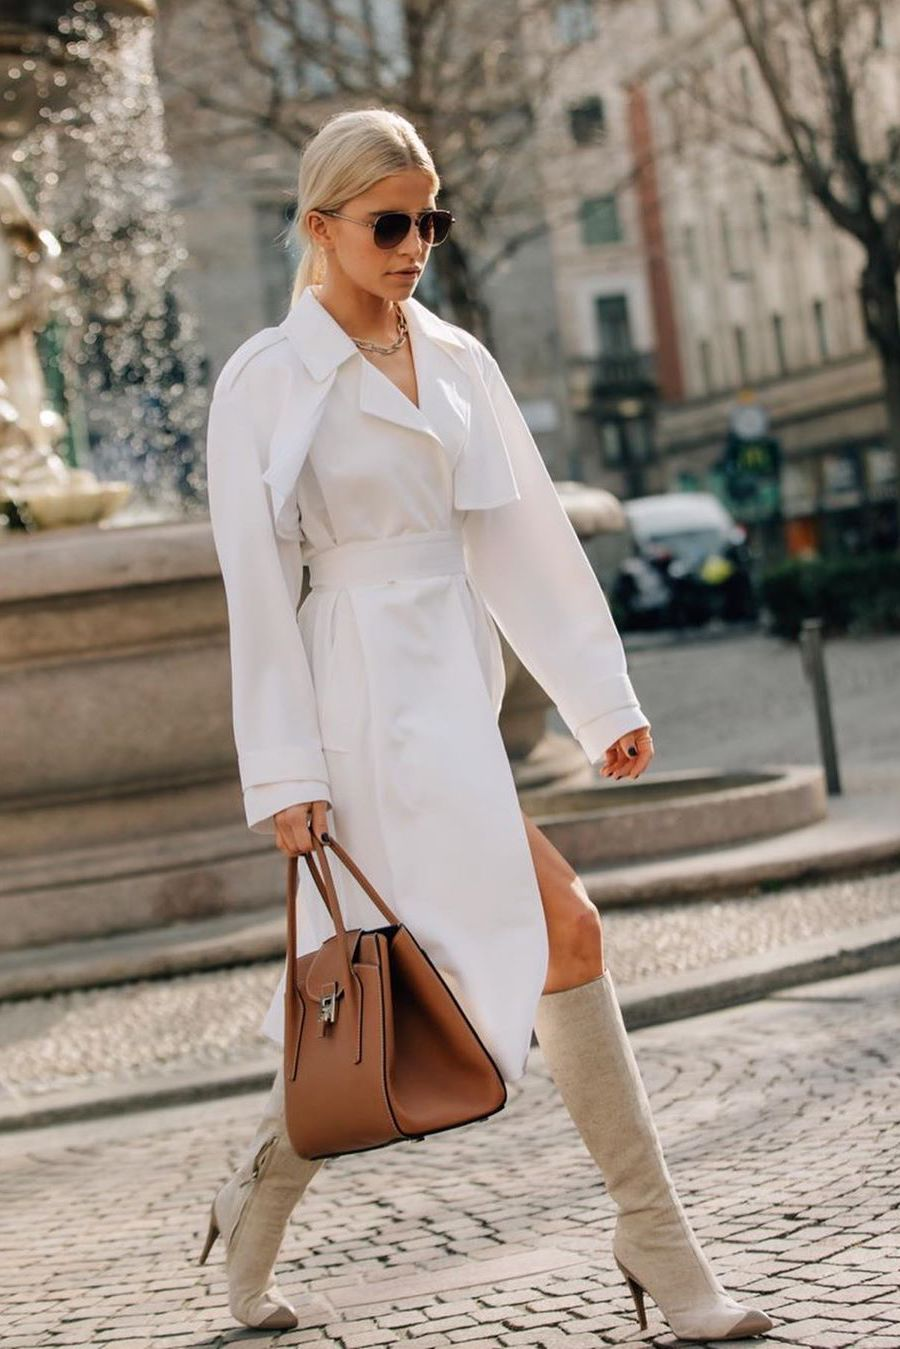 How to style trench coat for spring